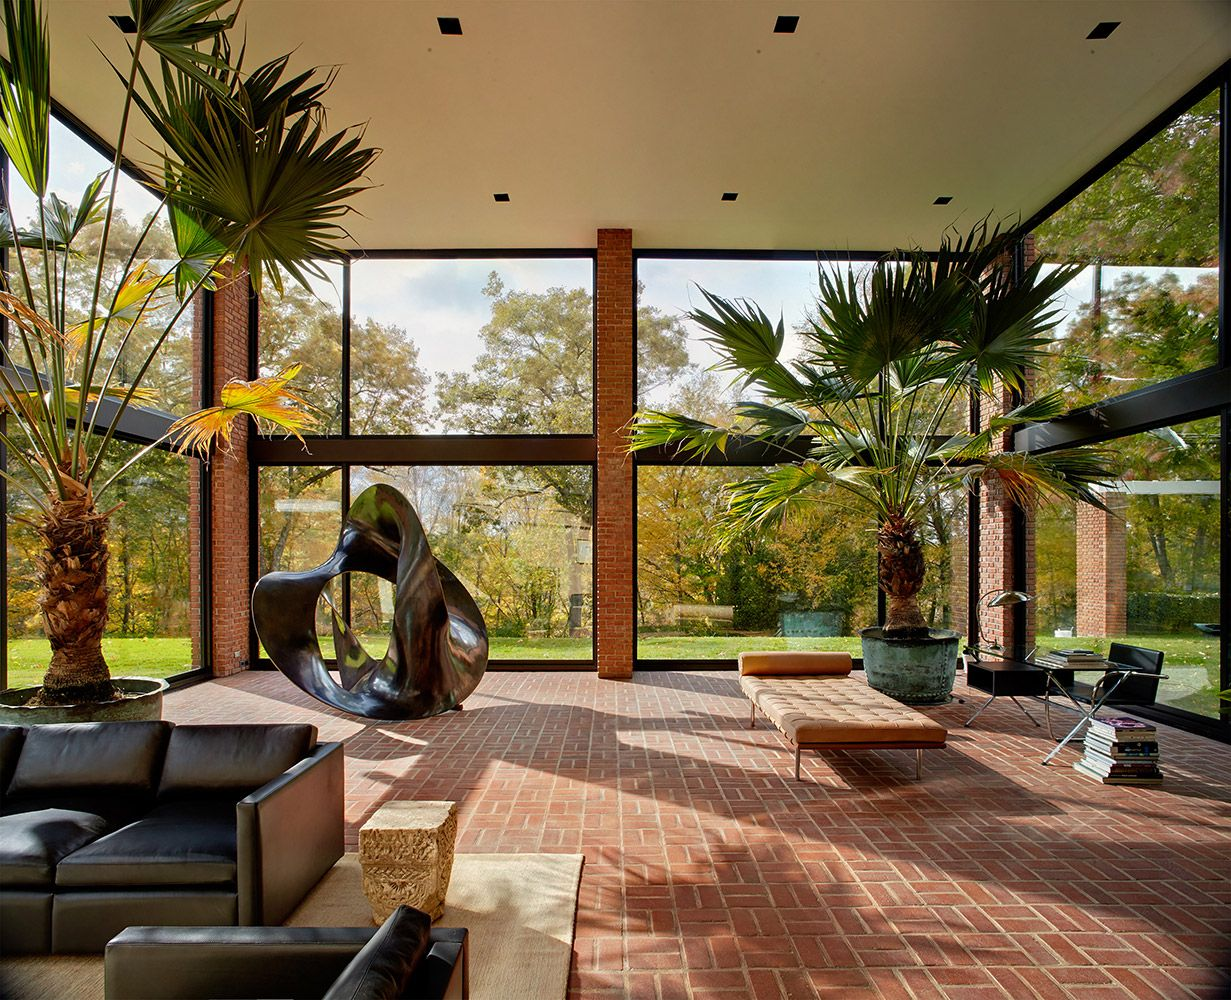 The Philip Johnson Glass House Is Organizing A Tour Of Five Significant Private Houses Designed By In New Canaan Ct